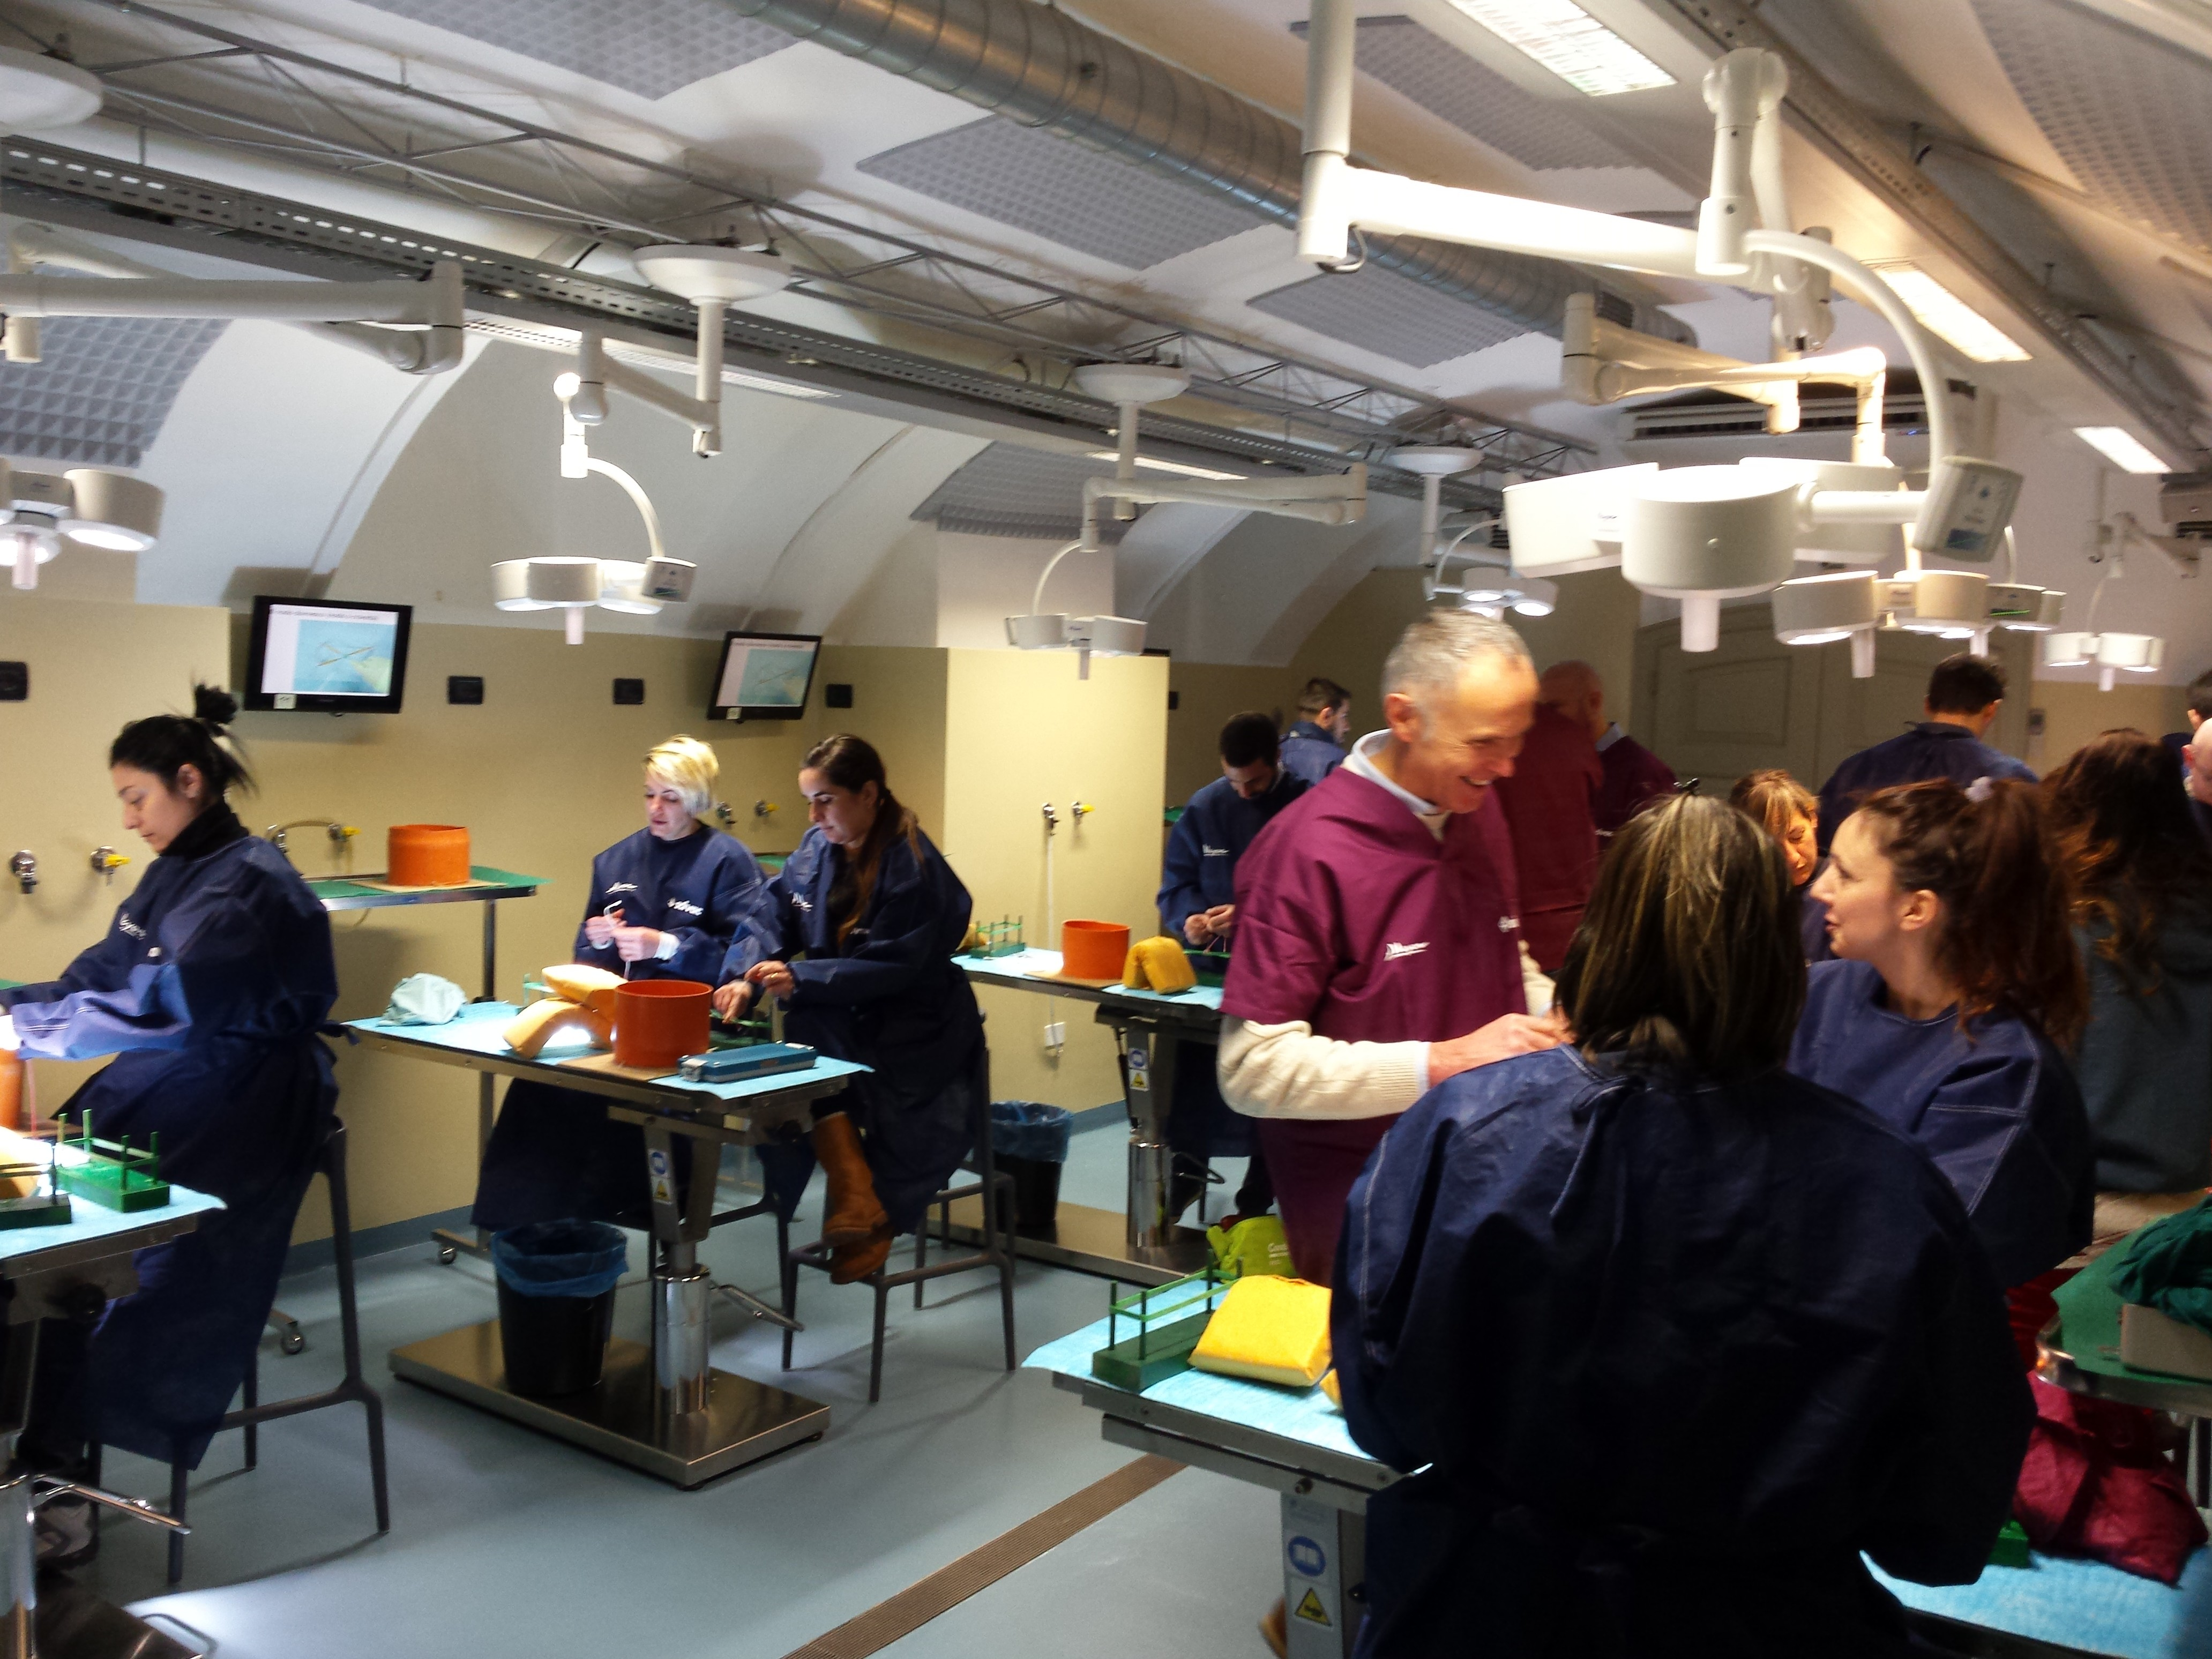 Cremona Practical Facilities